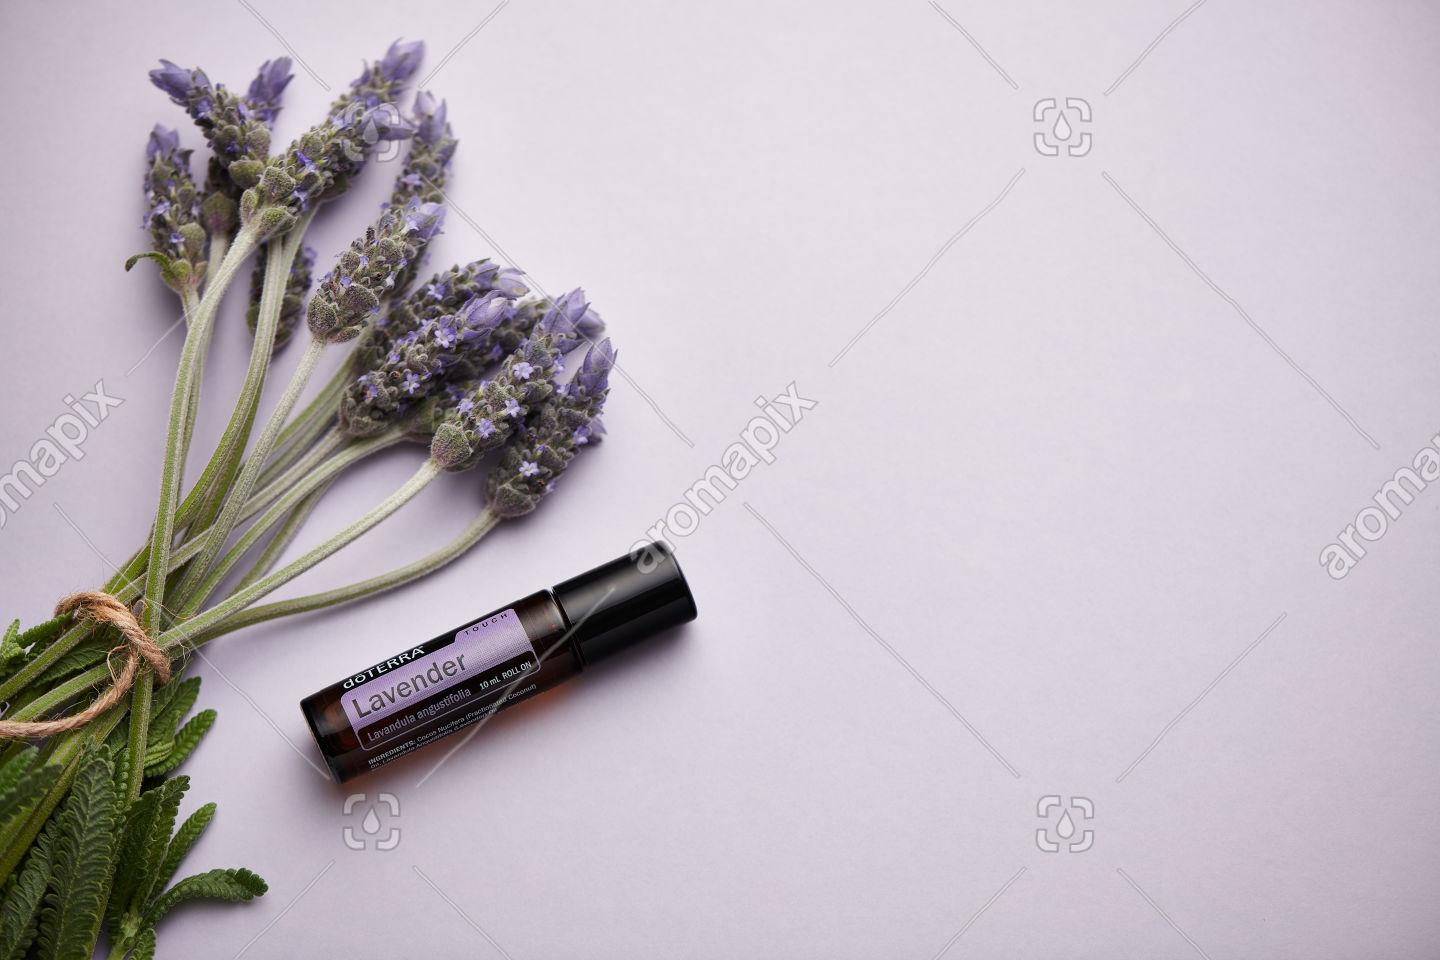 doTERRA Lavender Touch and lavender flowers on light purple card stock